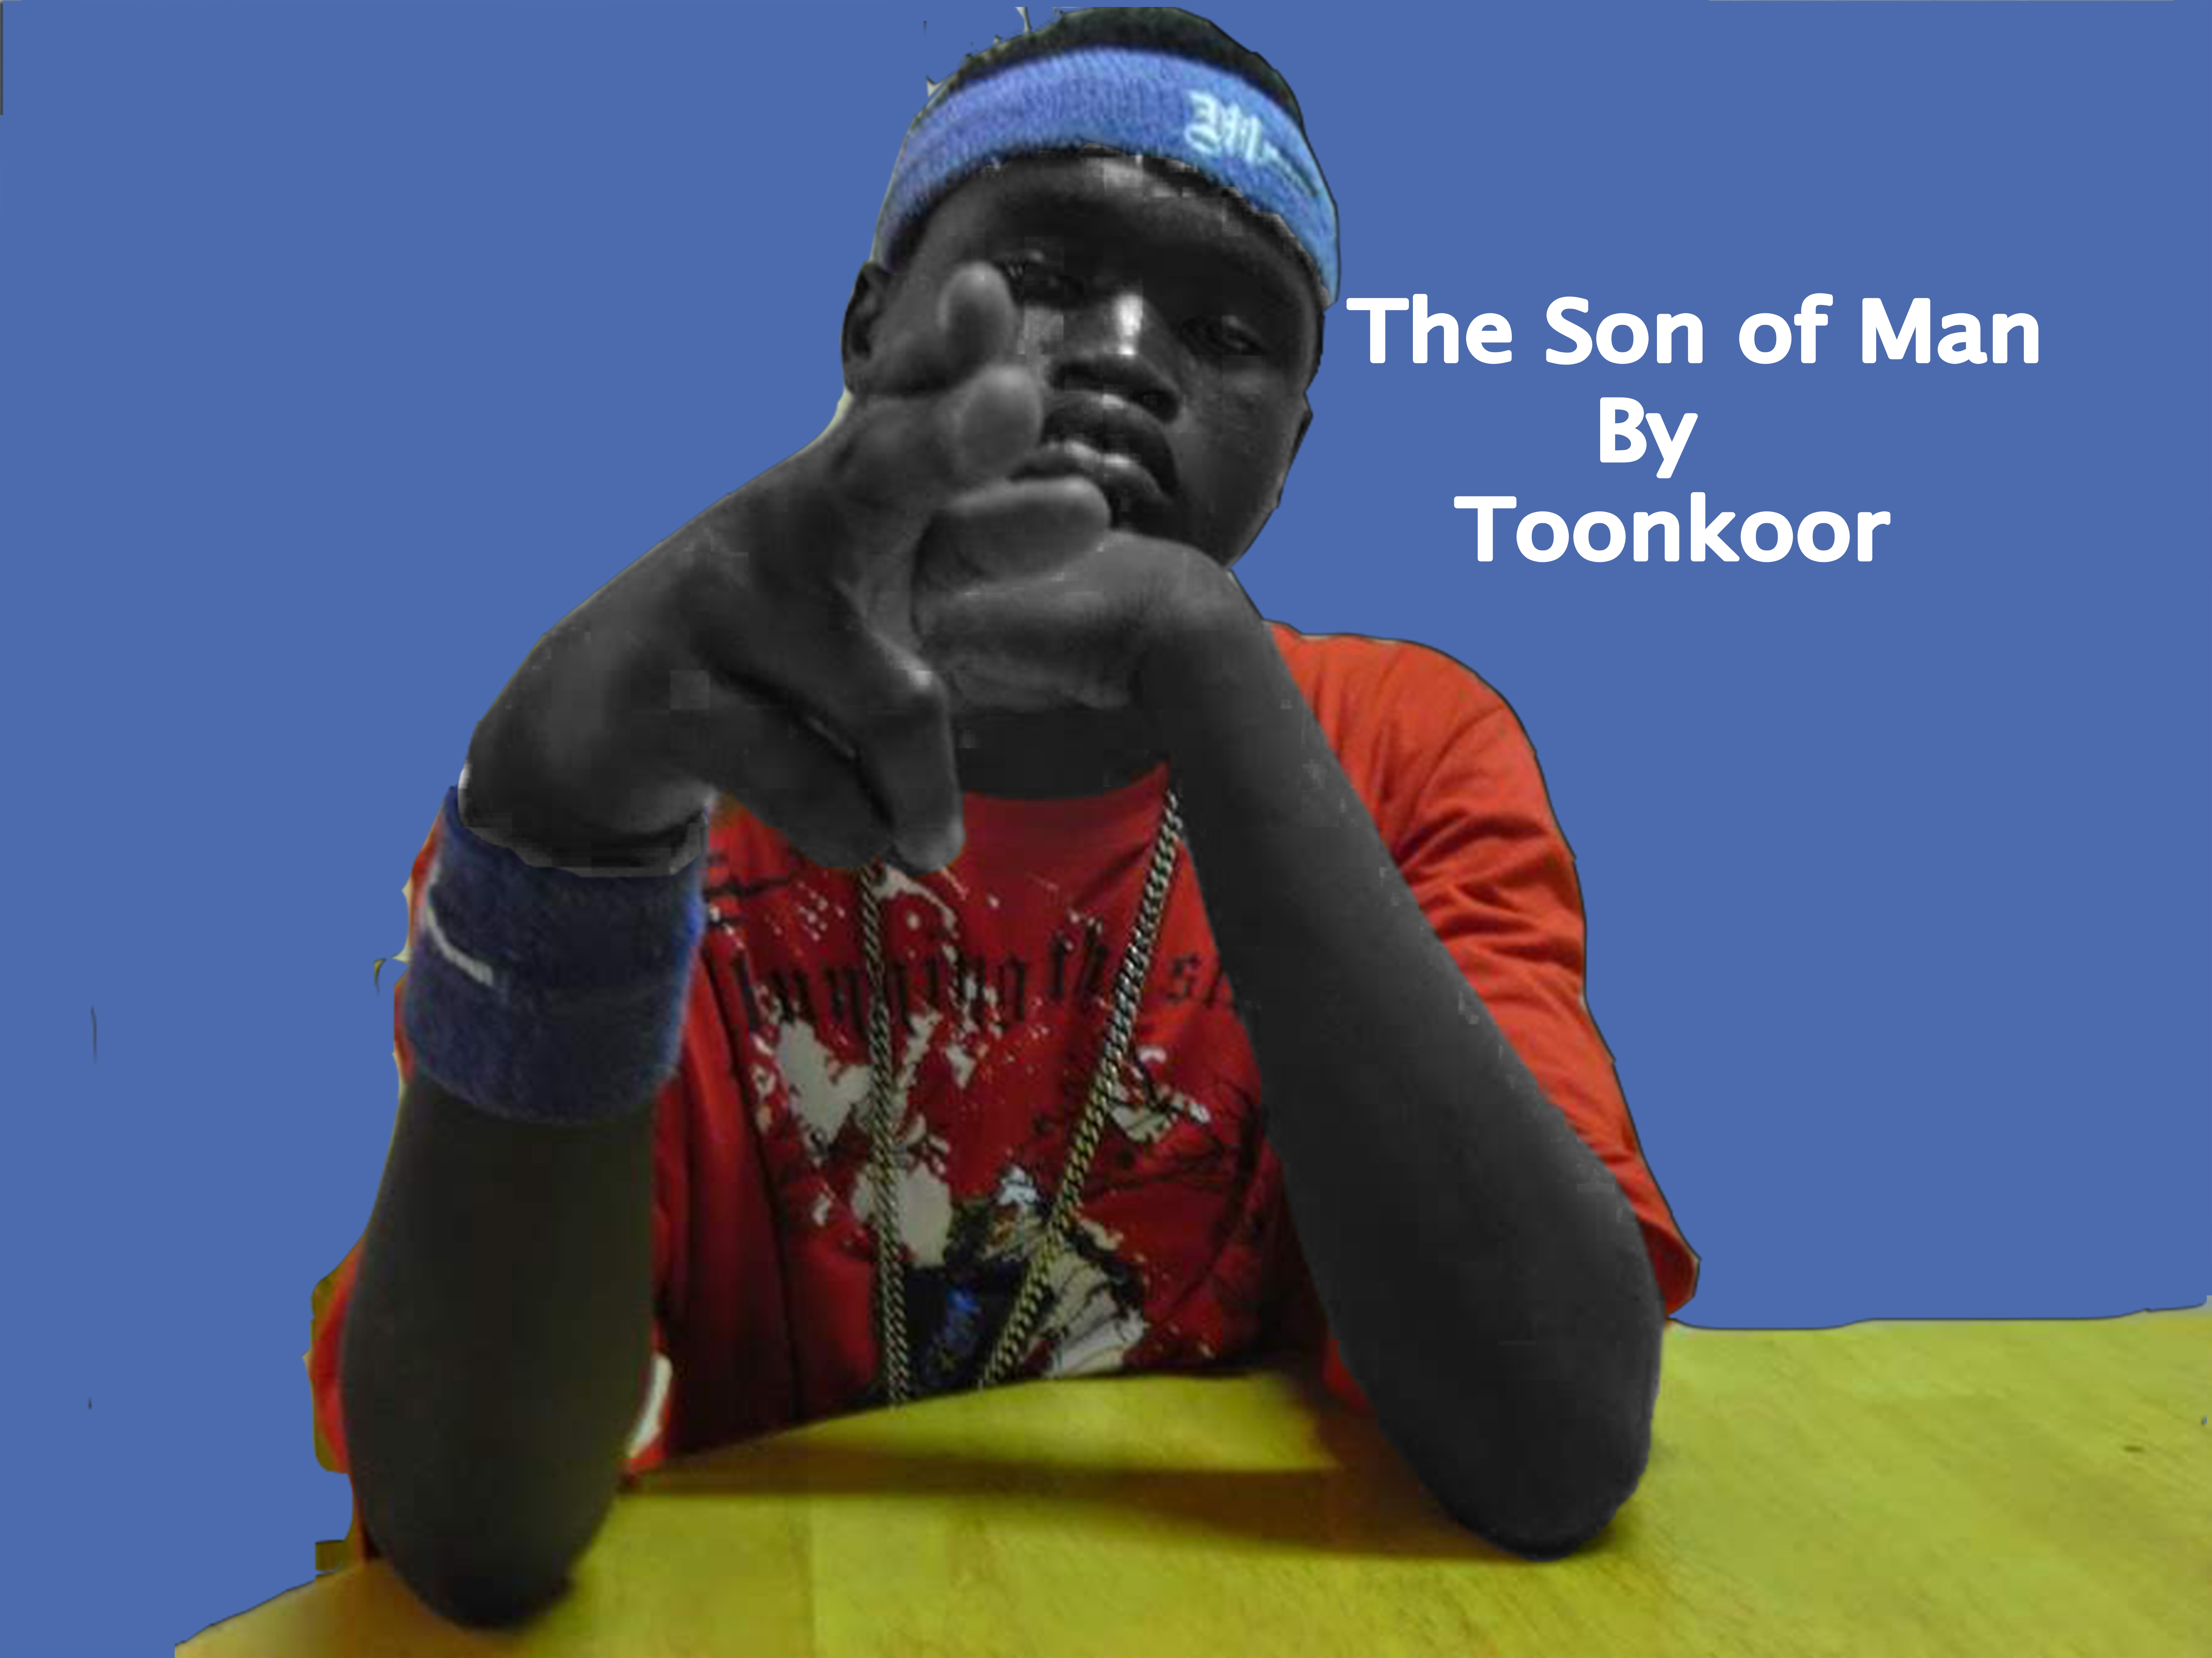 The Son of Man By Toonkoora1